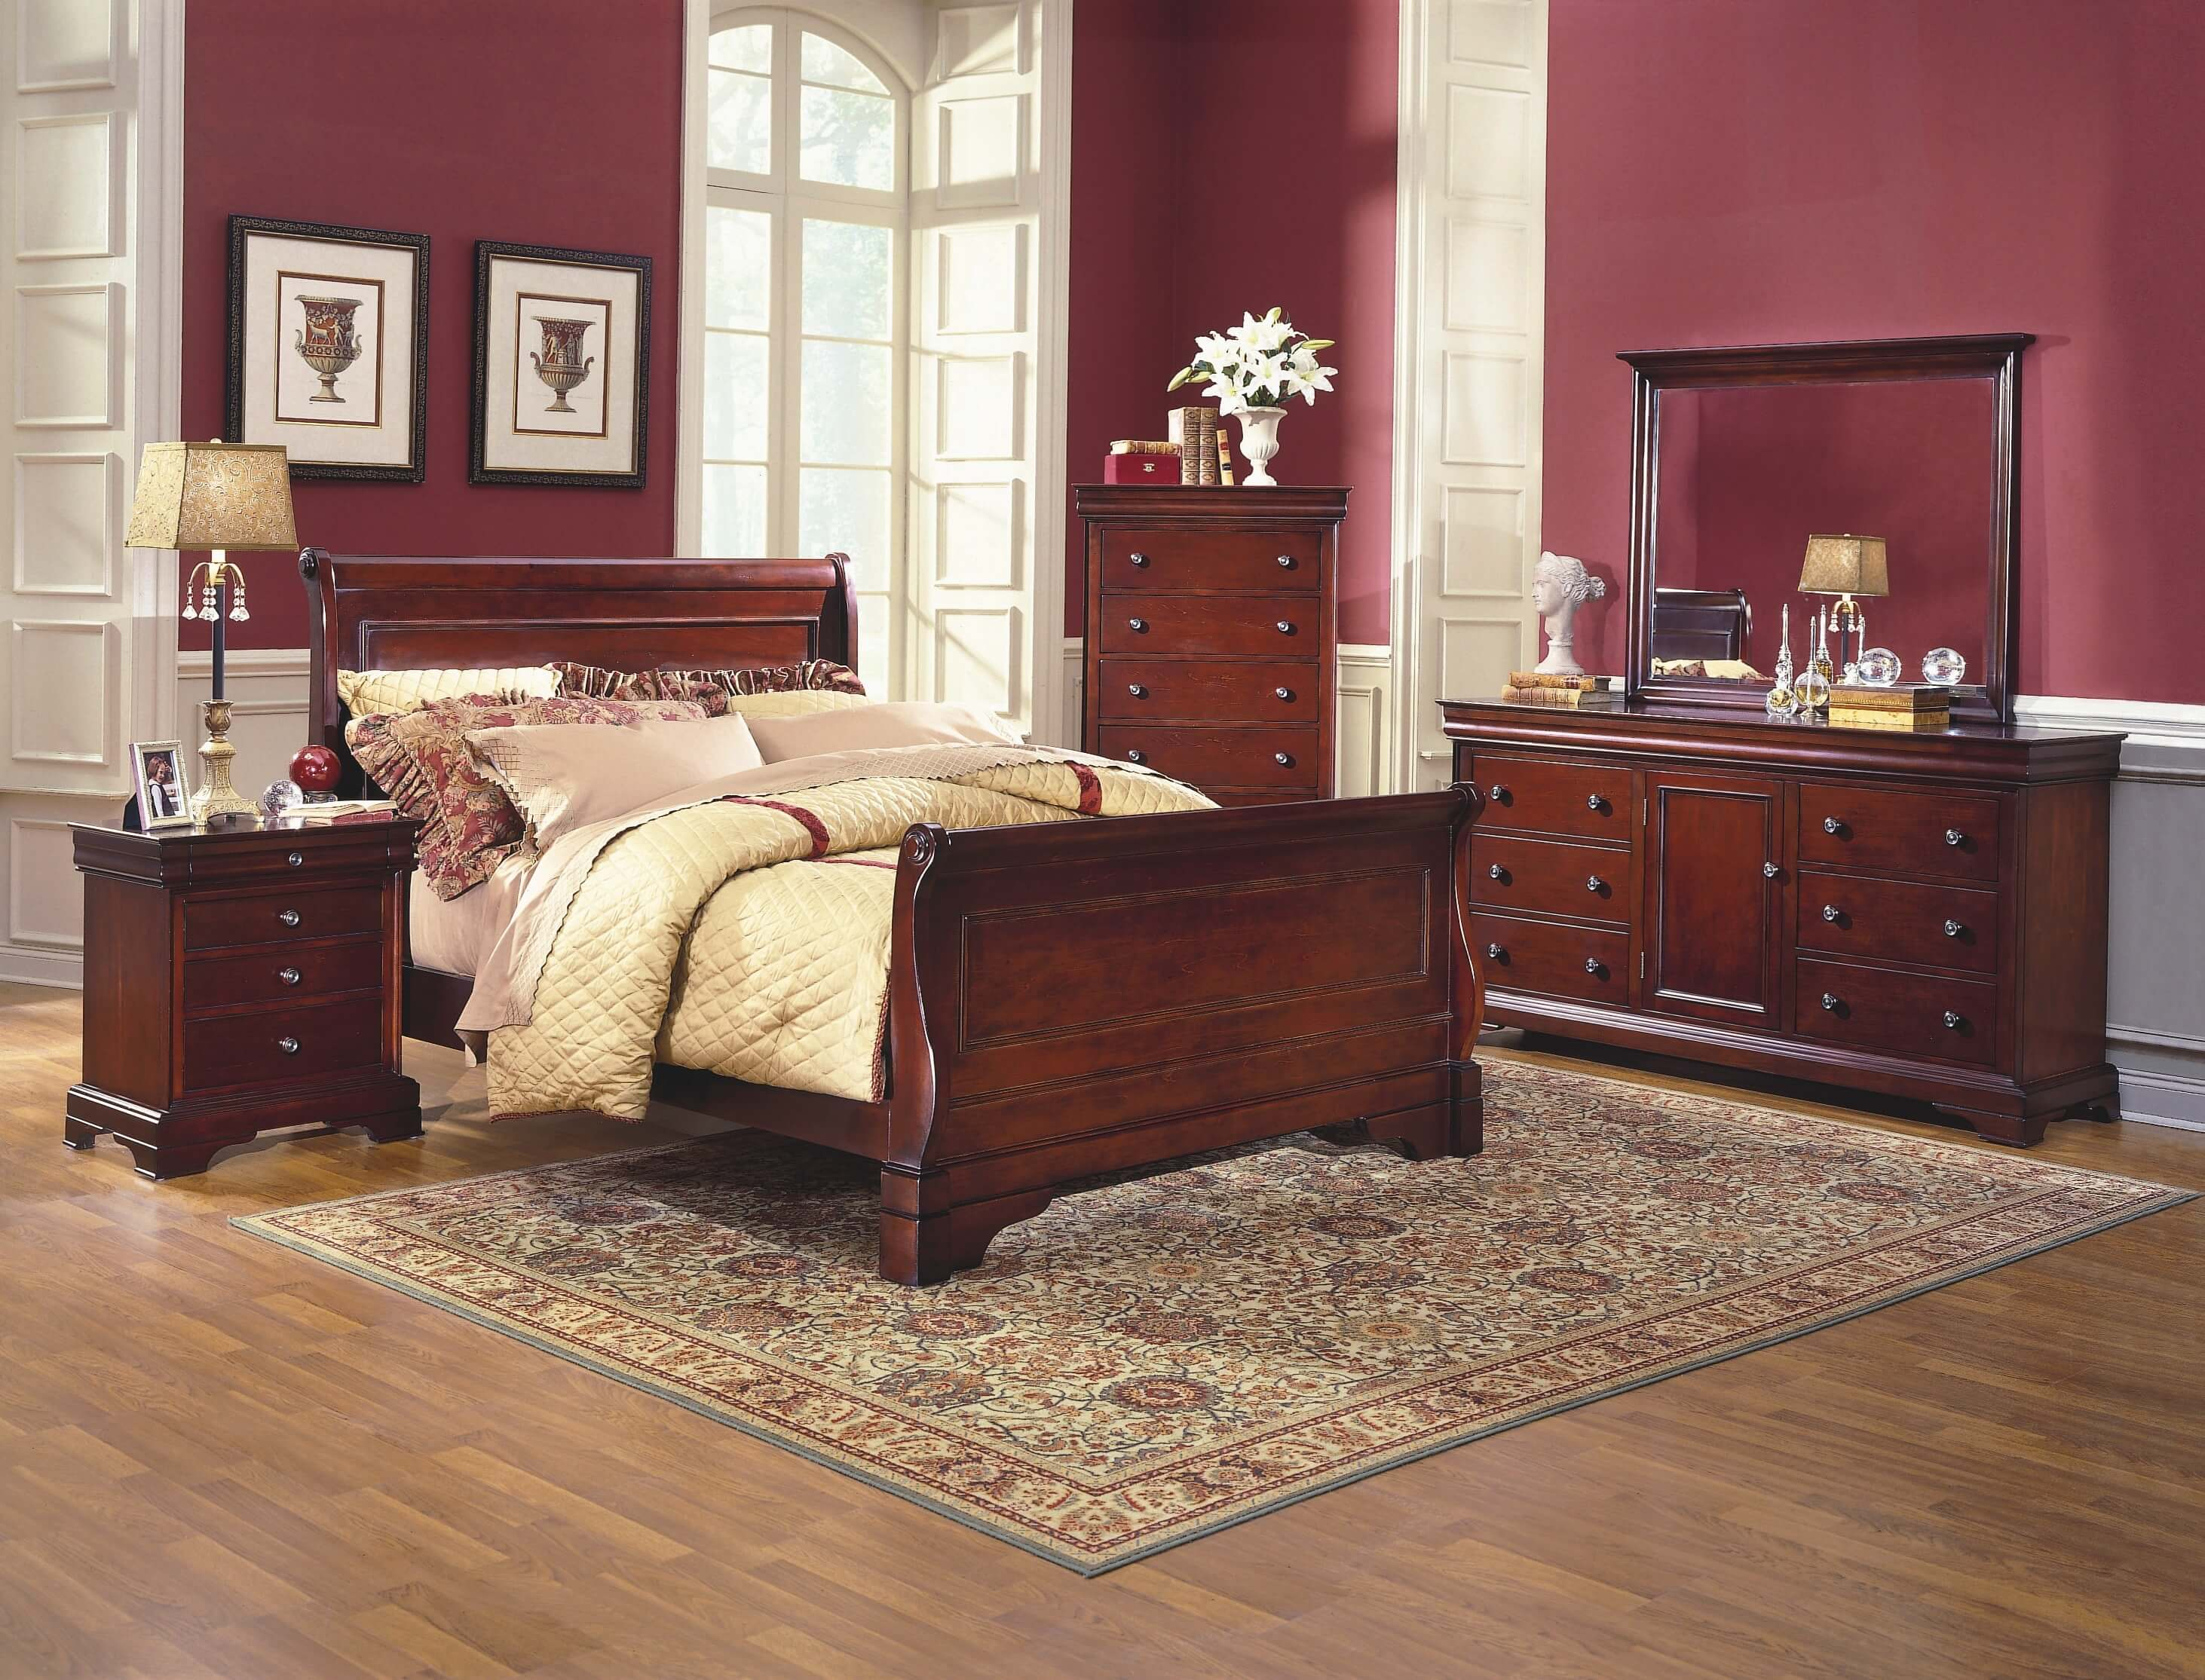 Bedroom Sets Nc versailles bedroom set | bedroom furniture sets